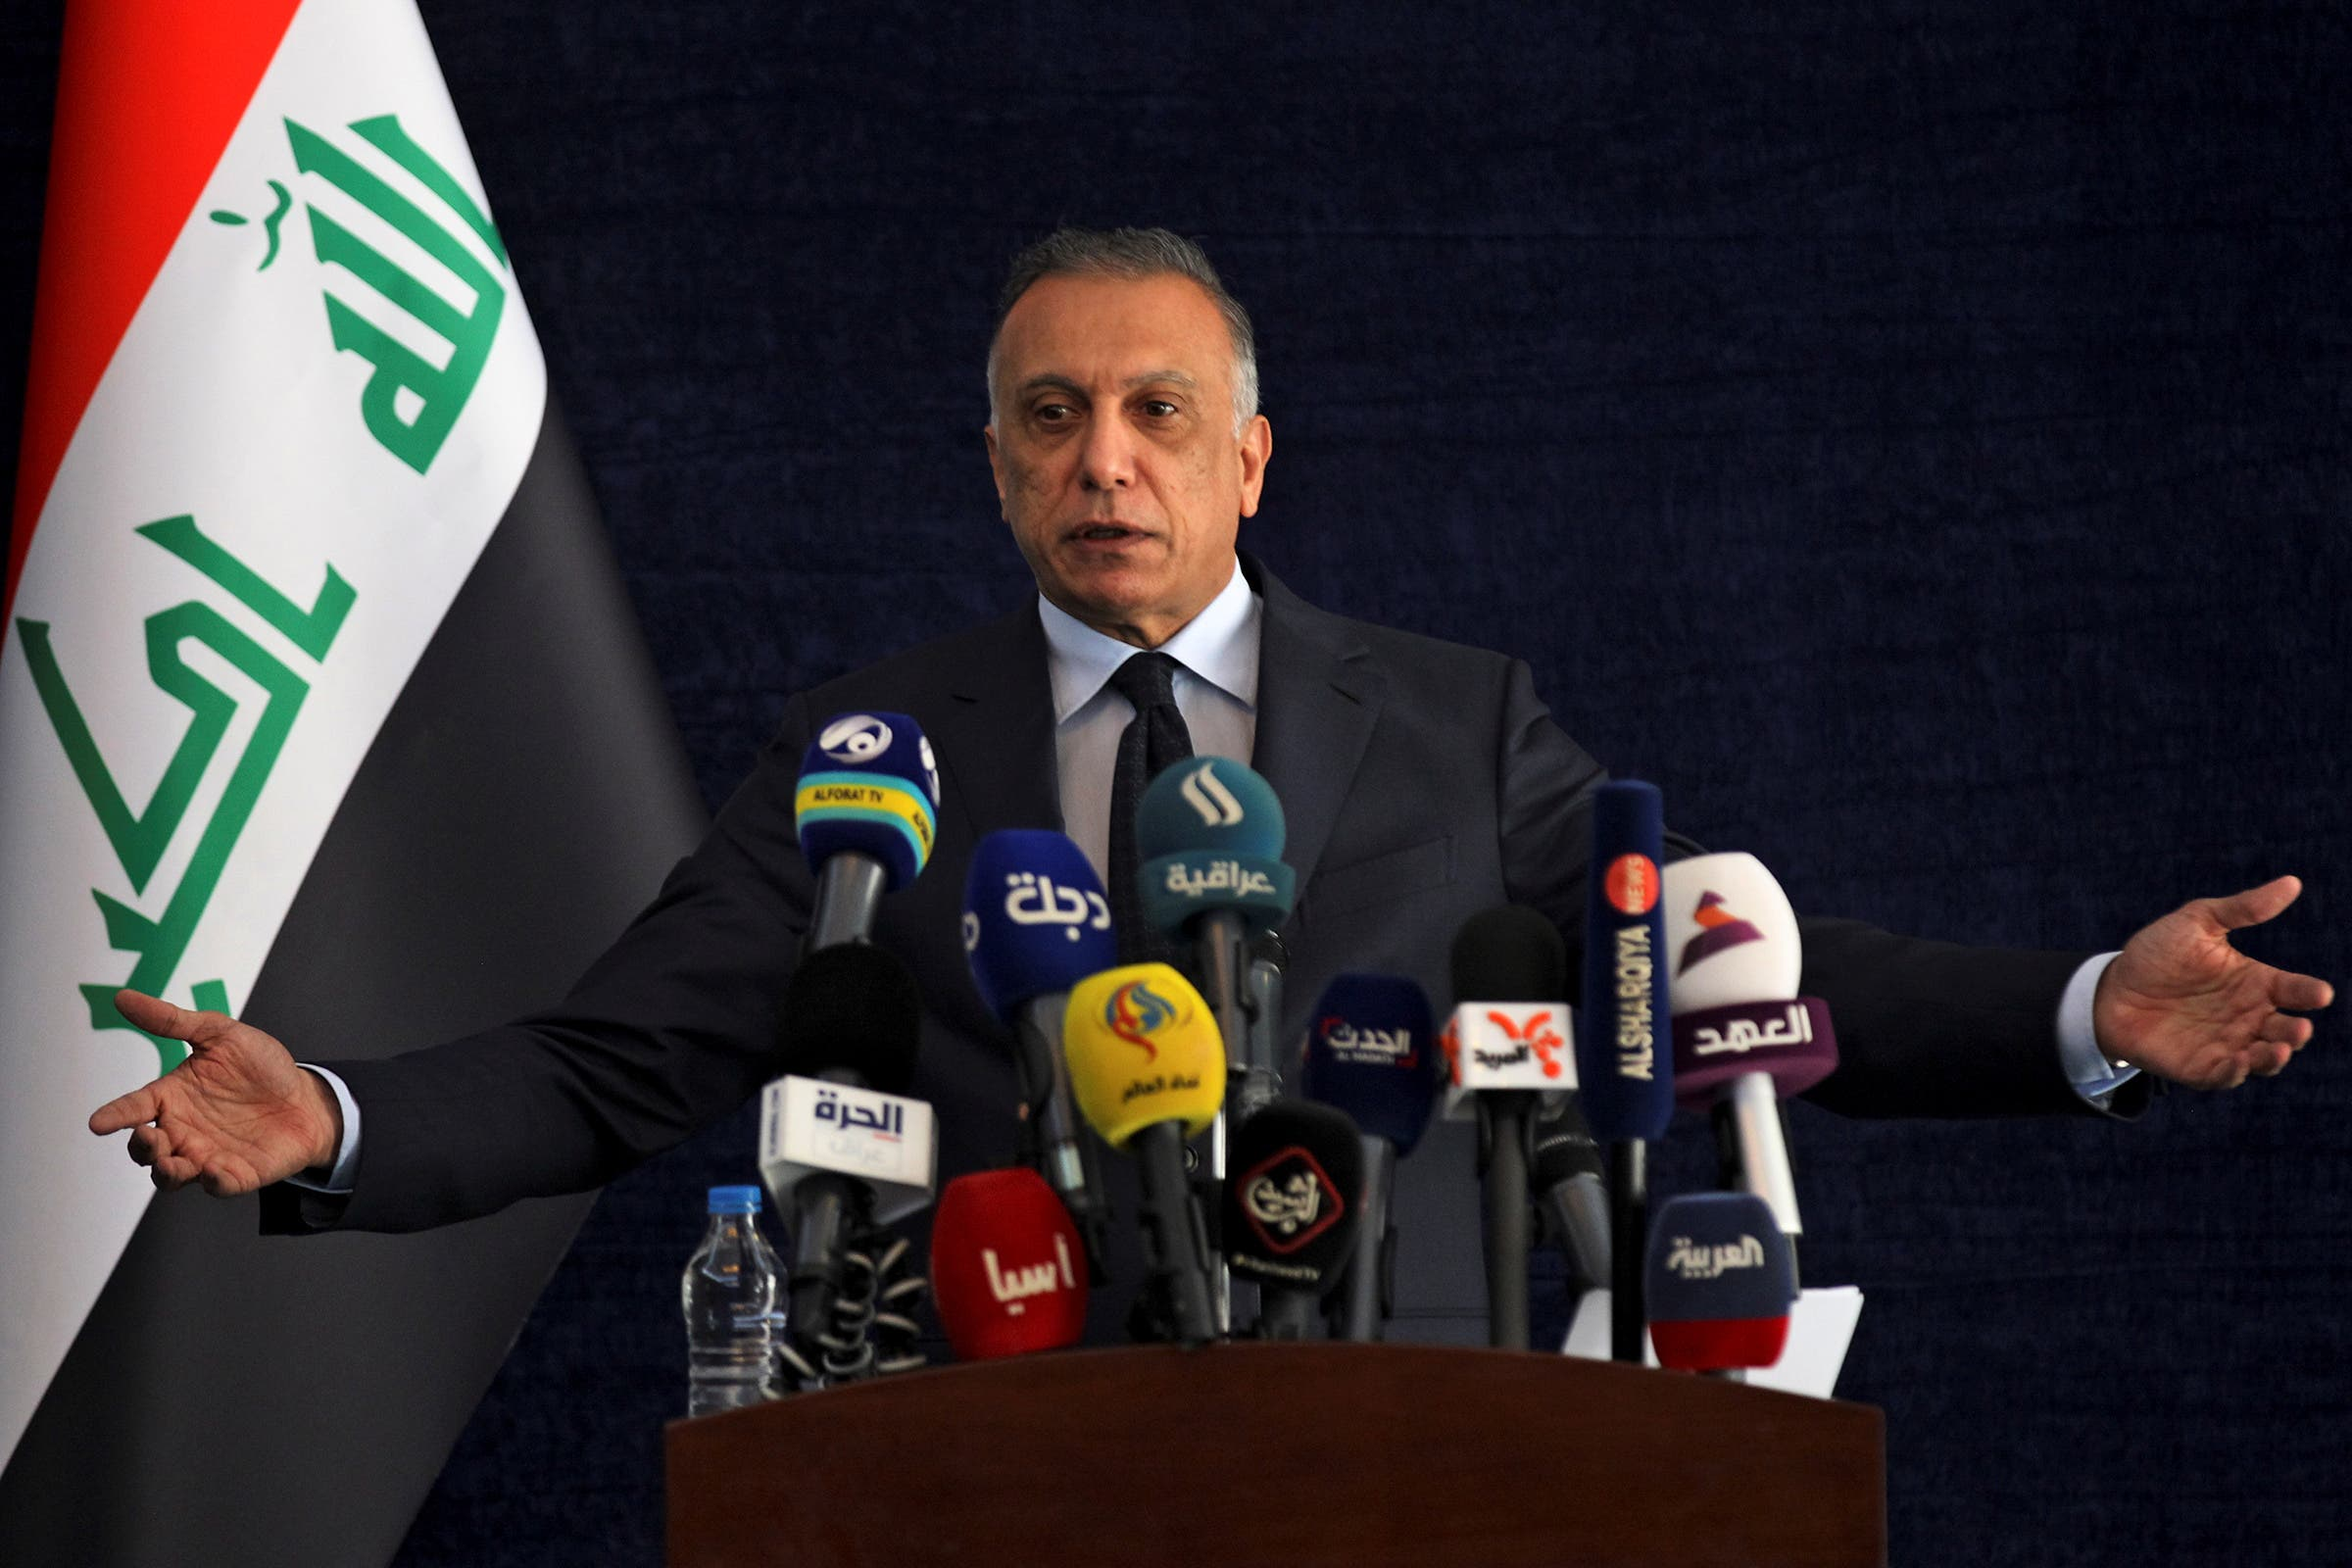 Iraqi Prime Minister Mustafa Al-Kadhimi speaks during a news conference in Basra, Iraq, July 15, 2020. (Ahmad Al-Rubaye via Reuters)